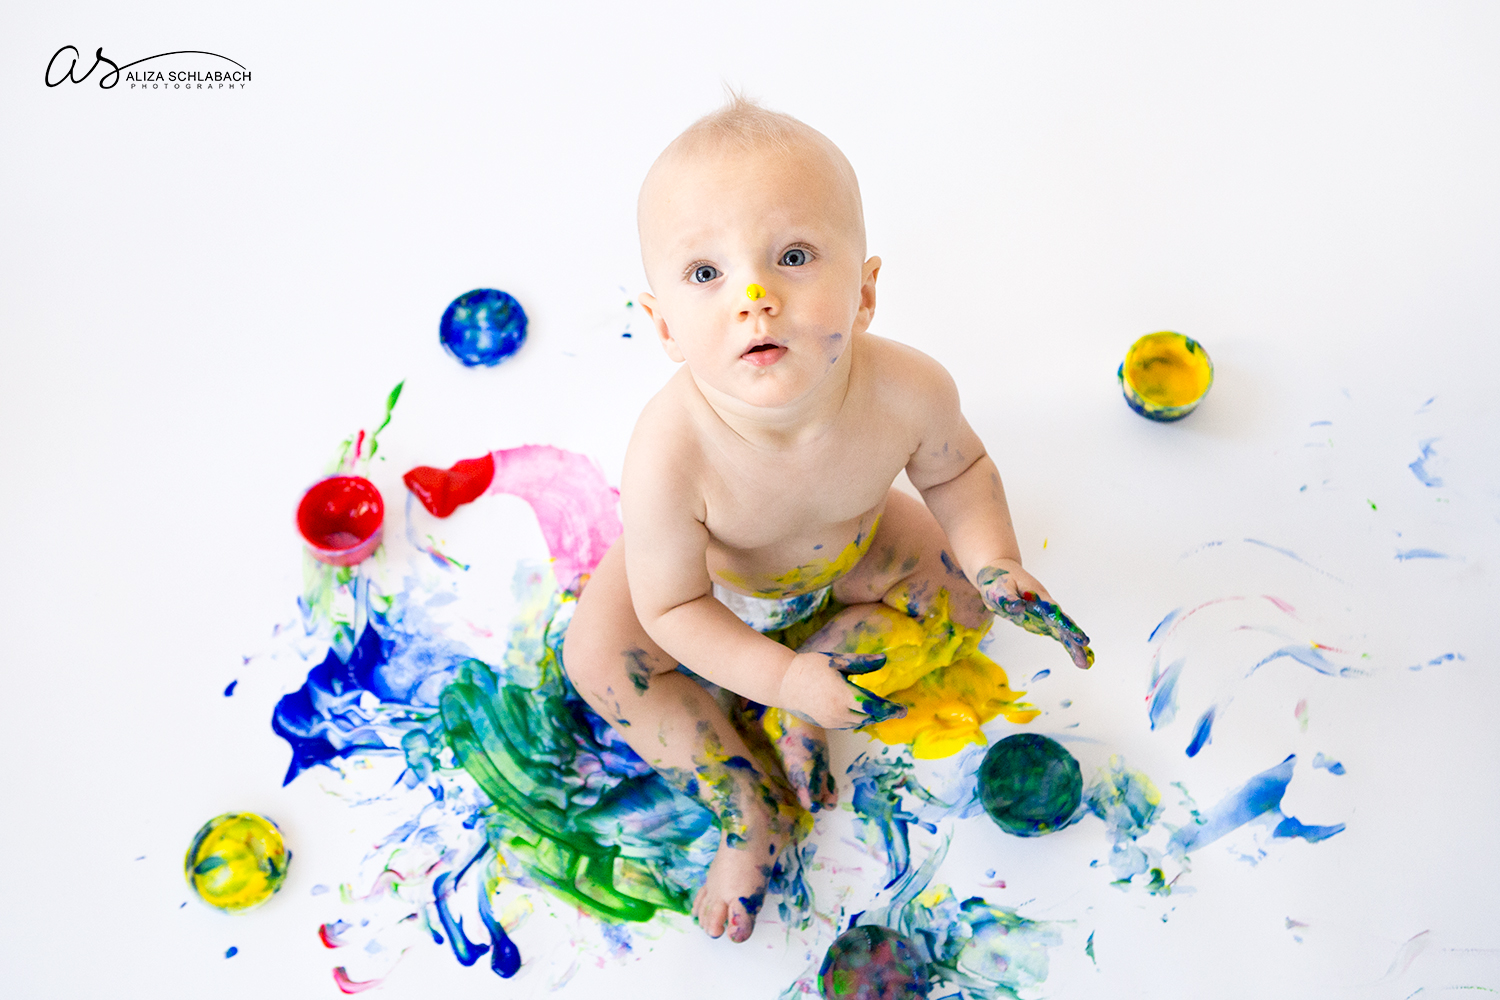 Photo of fingerpainting naked one year old boy looking up at camera